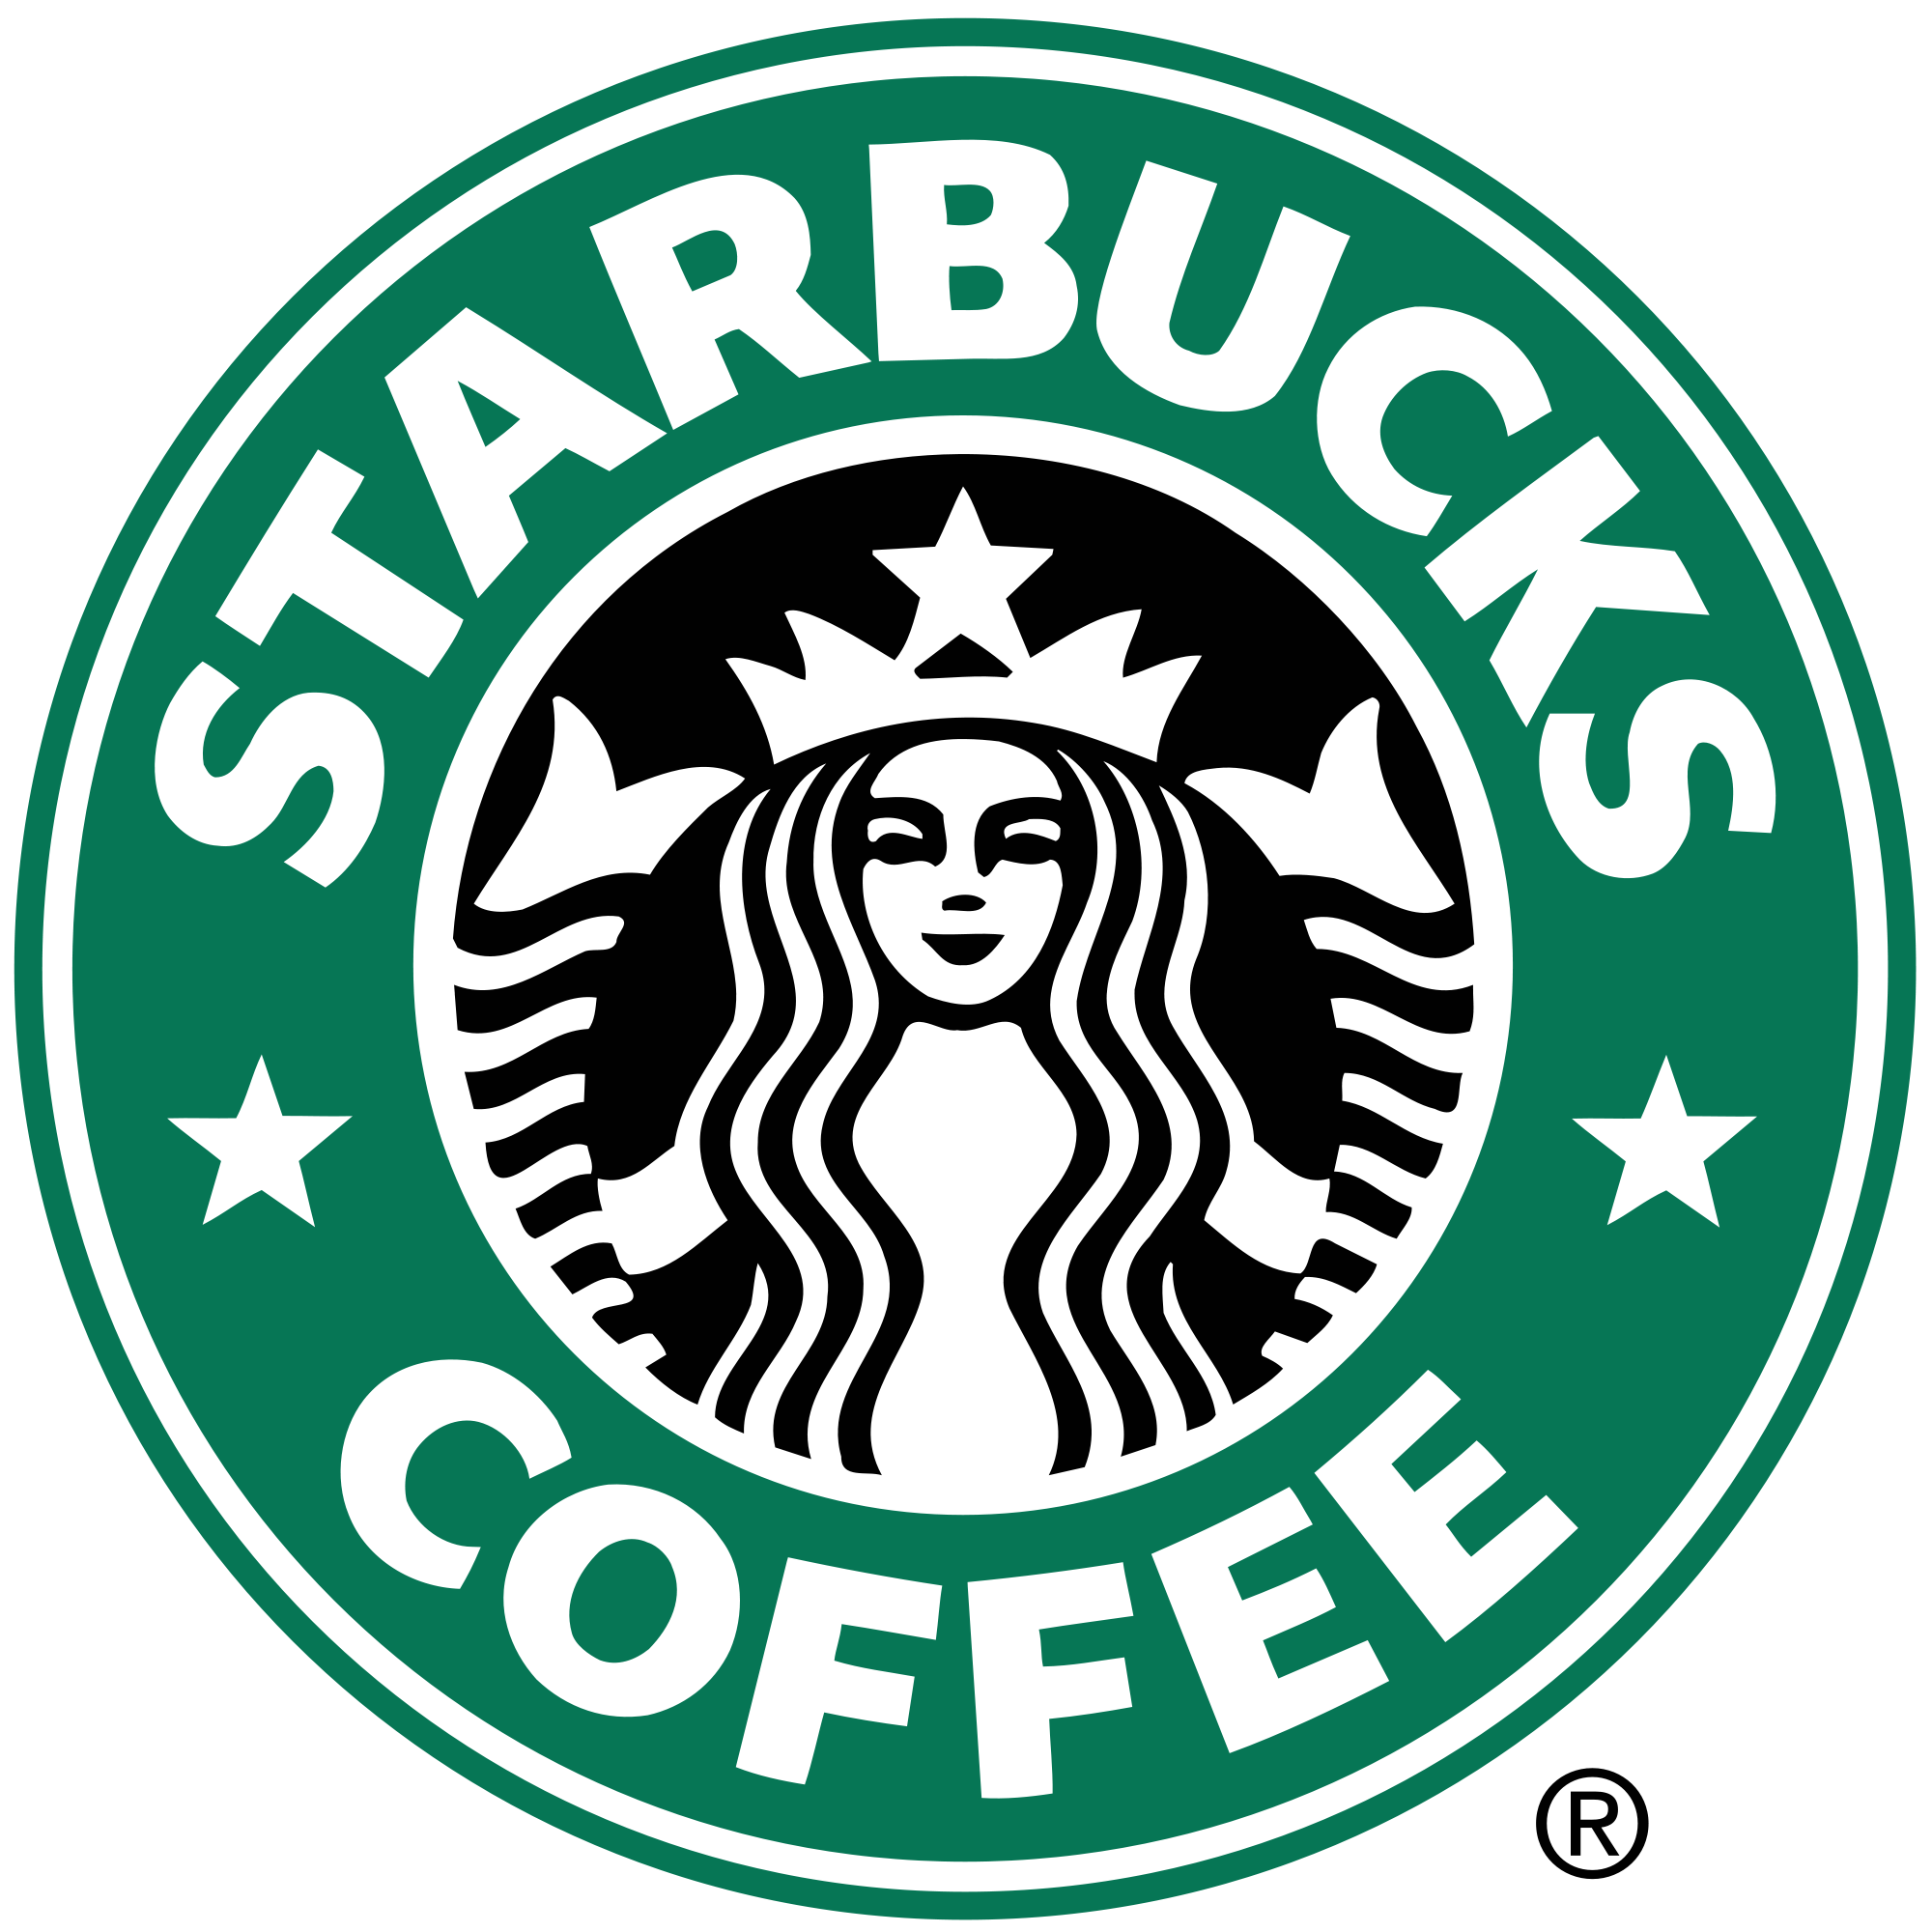 Starbucks Coffee Logo.svg.png - Starbucks PNG